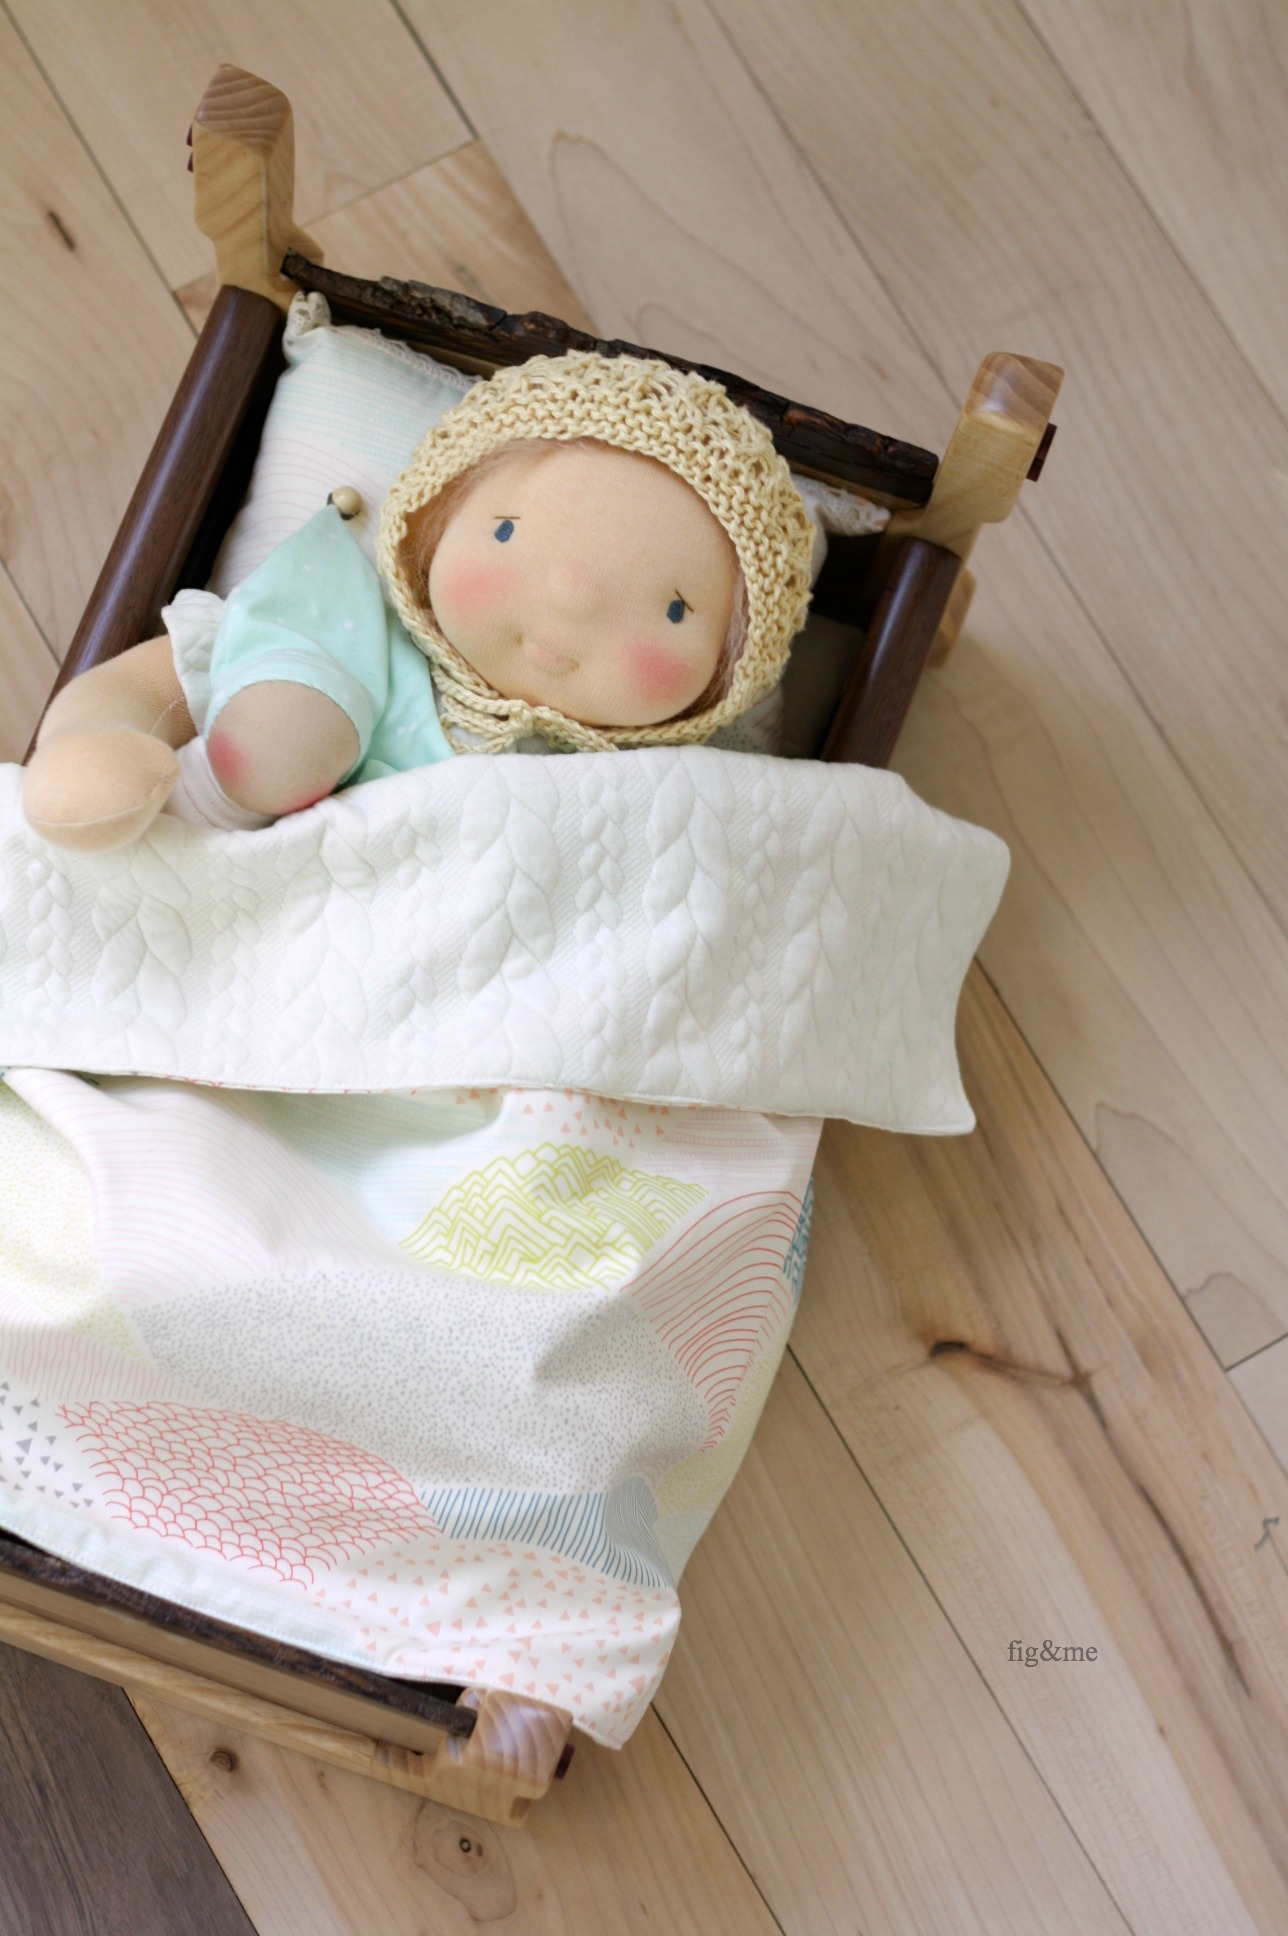 Robina and her wooden cradle, by Fig and me